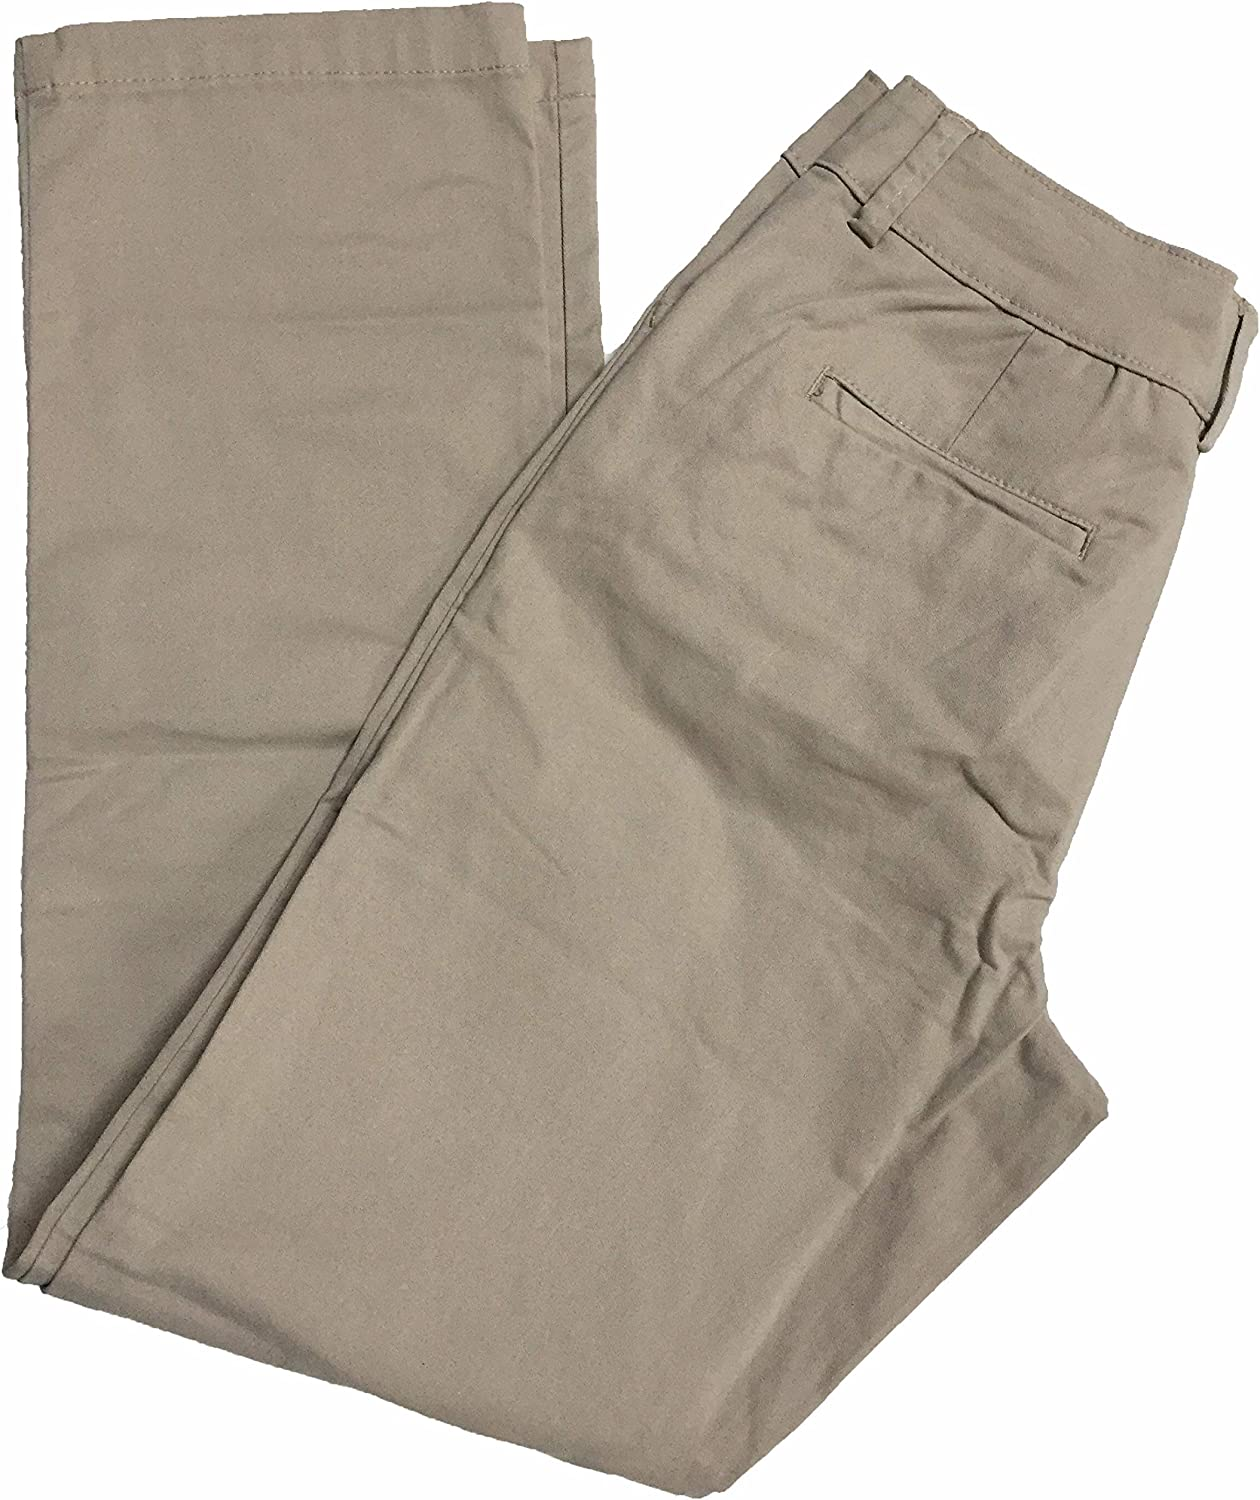 Lee Super sale Women's Relaxed Fit Sale special price Plain Front Straight Pant Leg